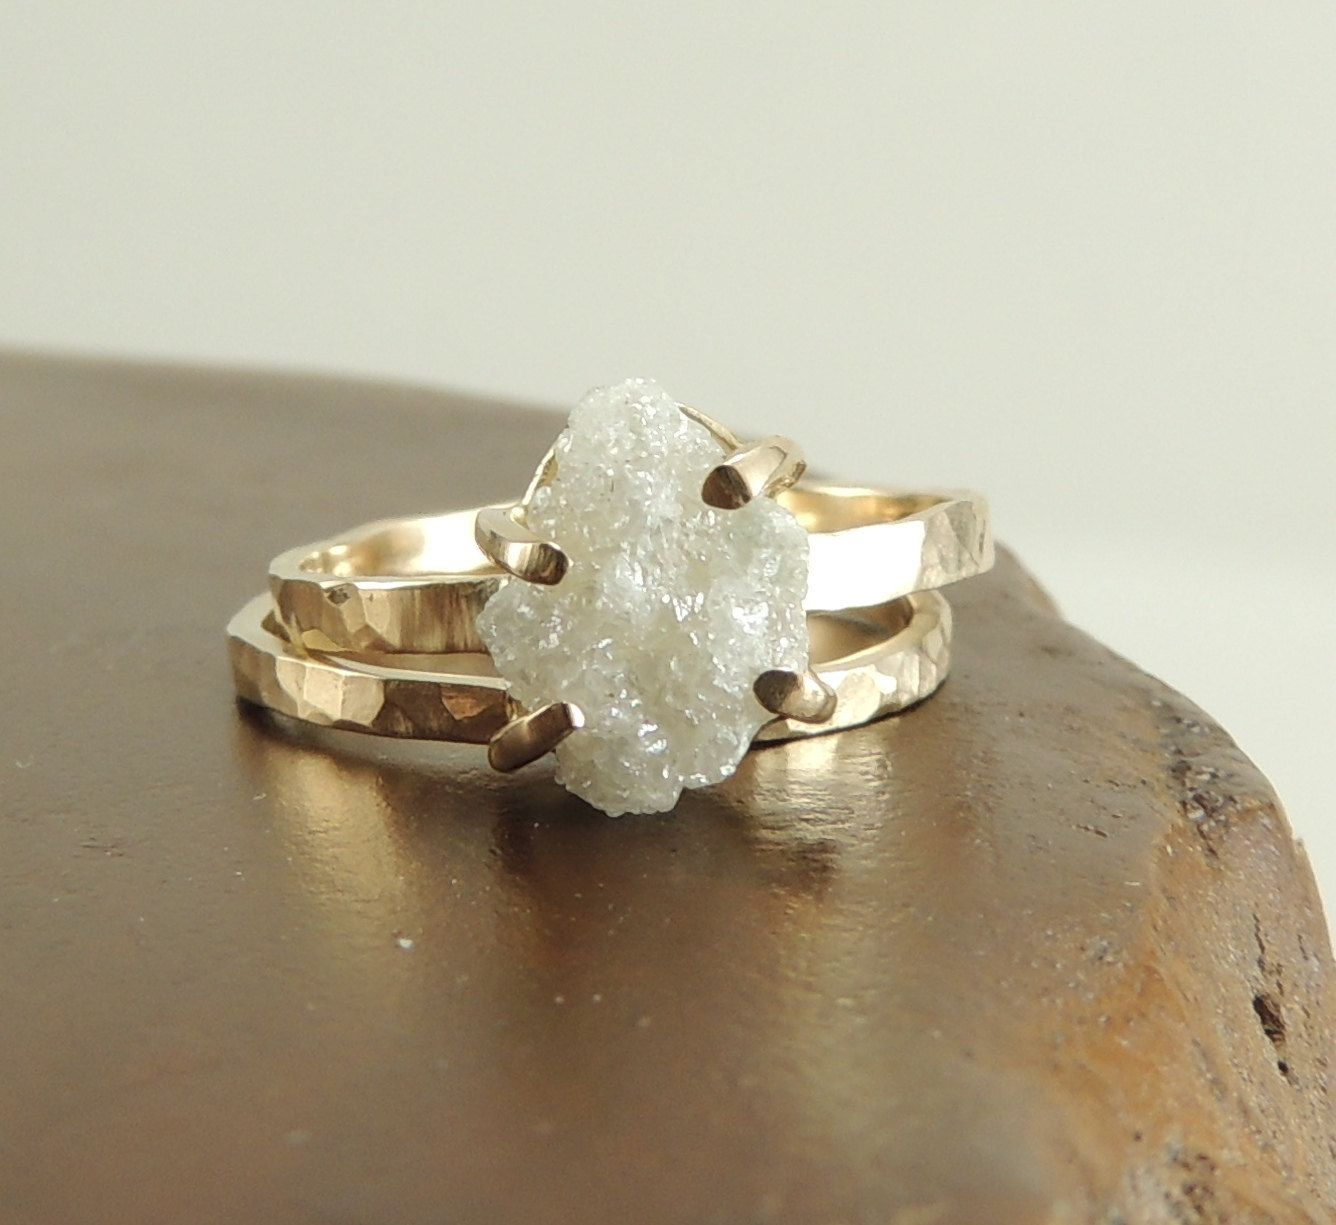 Rough Diamond 14k Gold Ring, Prong Set Large Rough Diamond Ring, Handmade Engagement  Ring